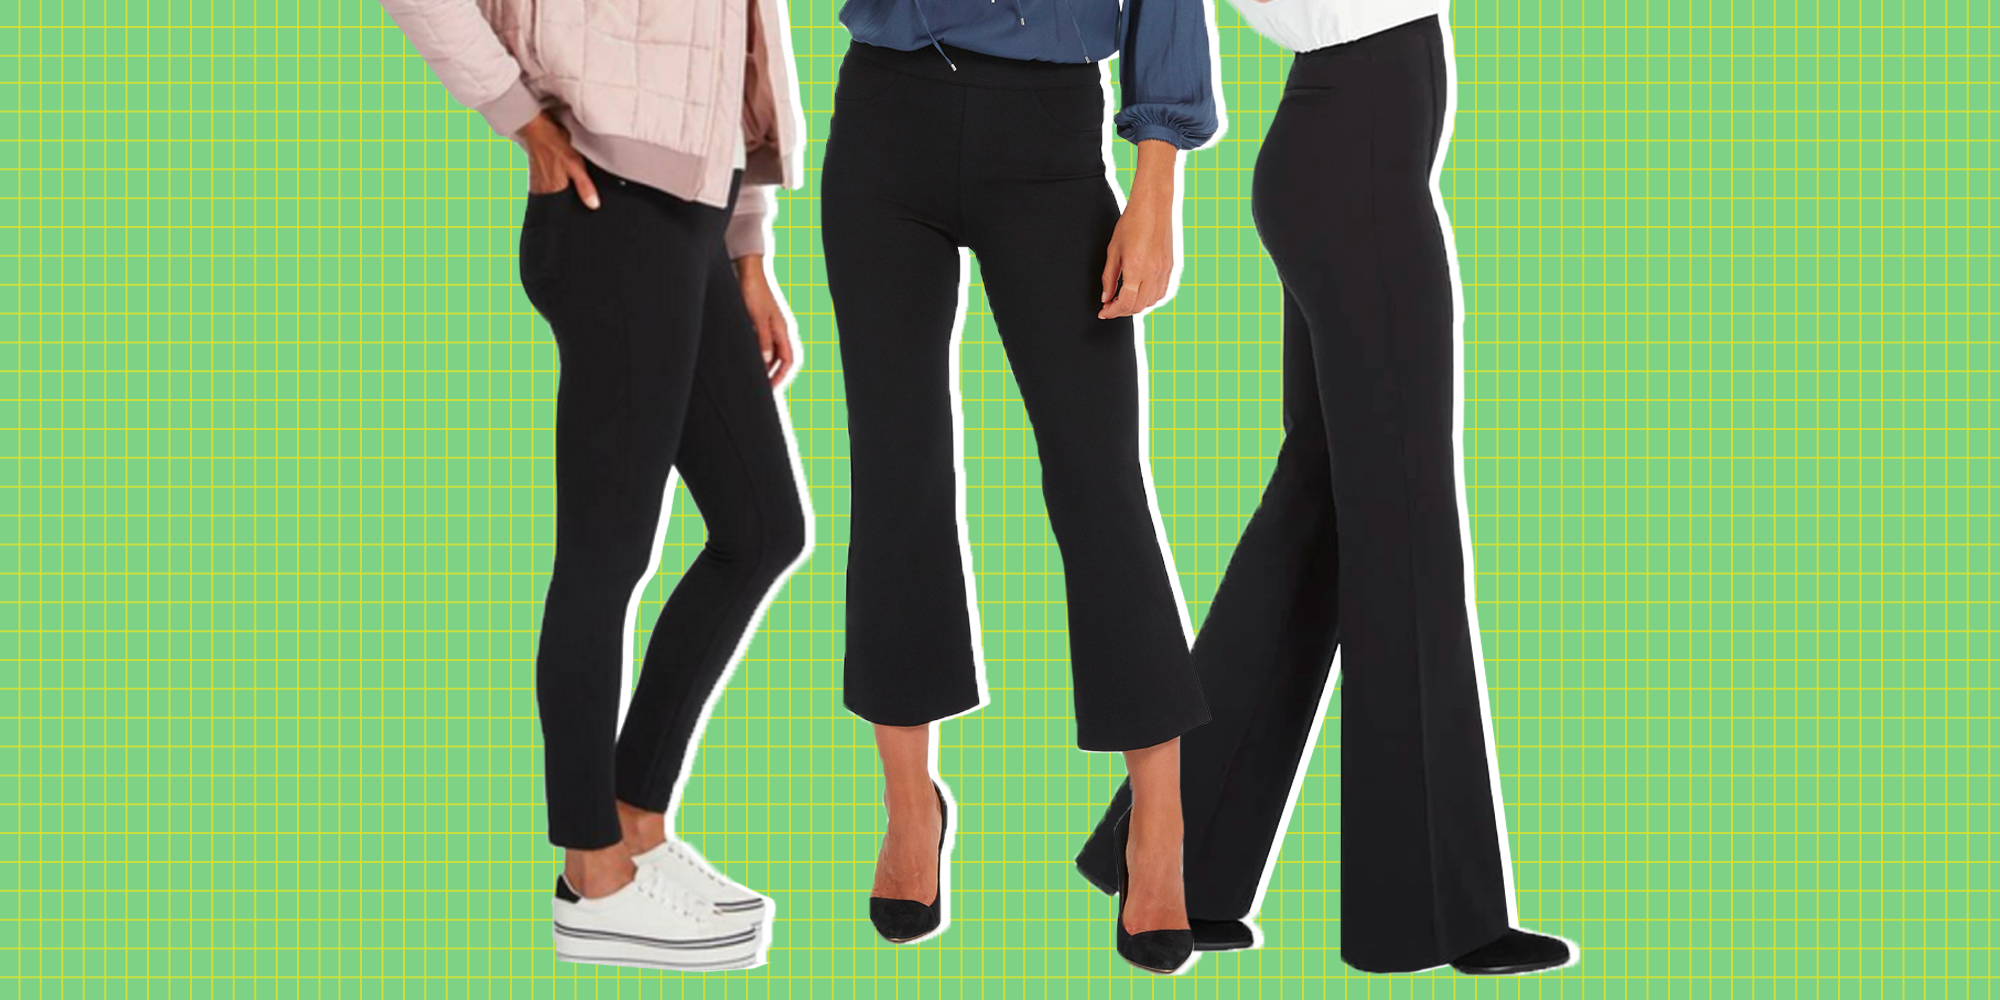 Oprah Loved These Spanx Pants So Much She Personally Thanked the Founder